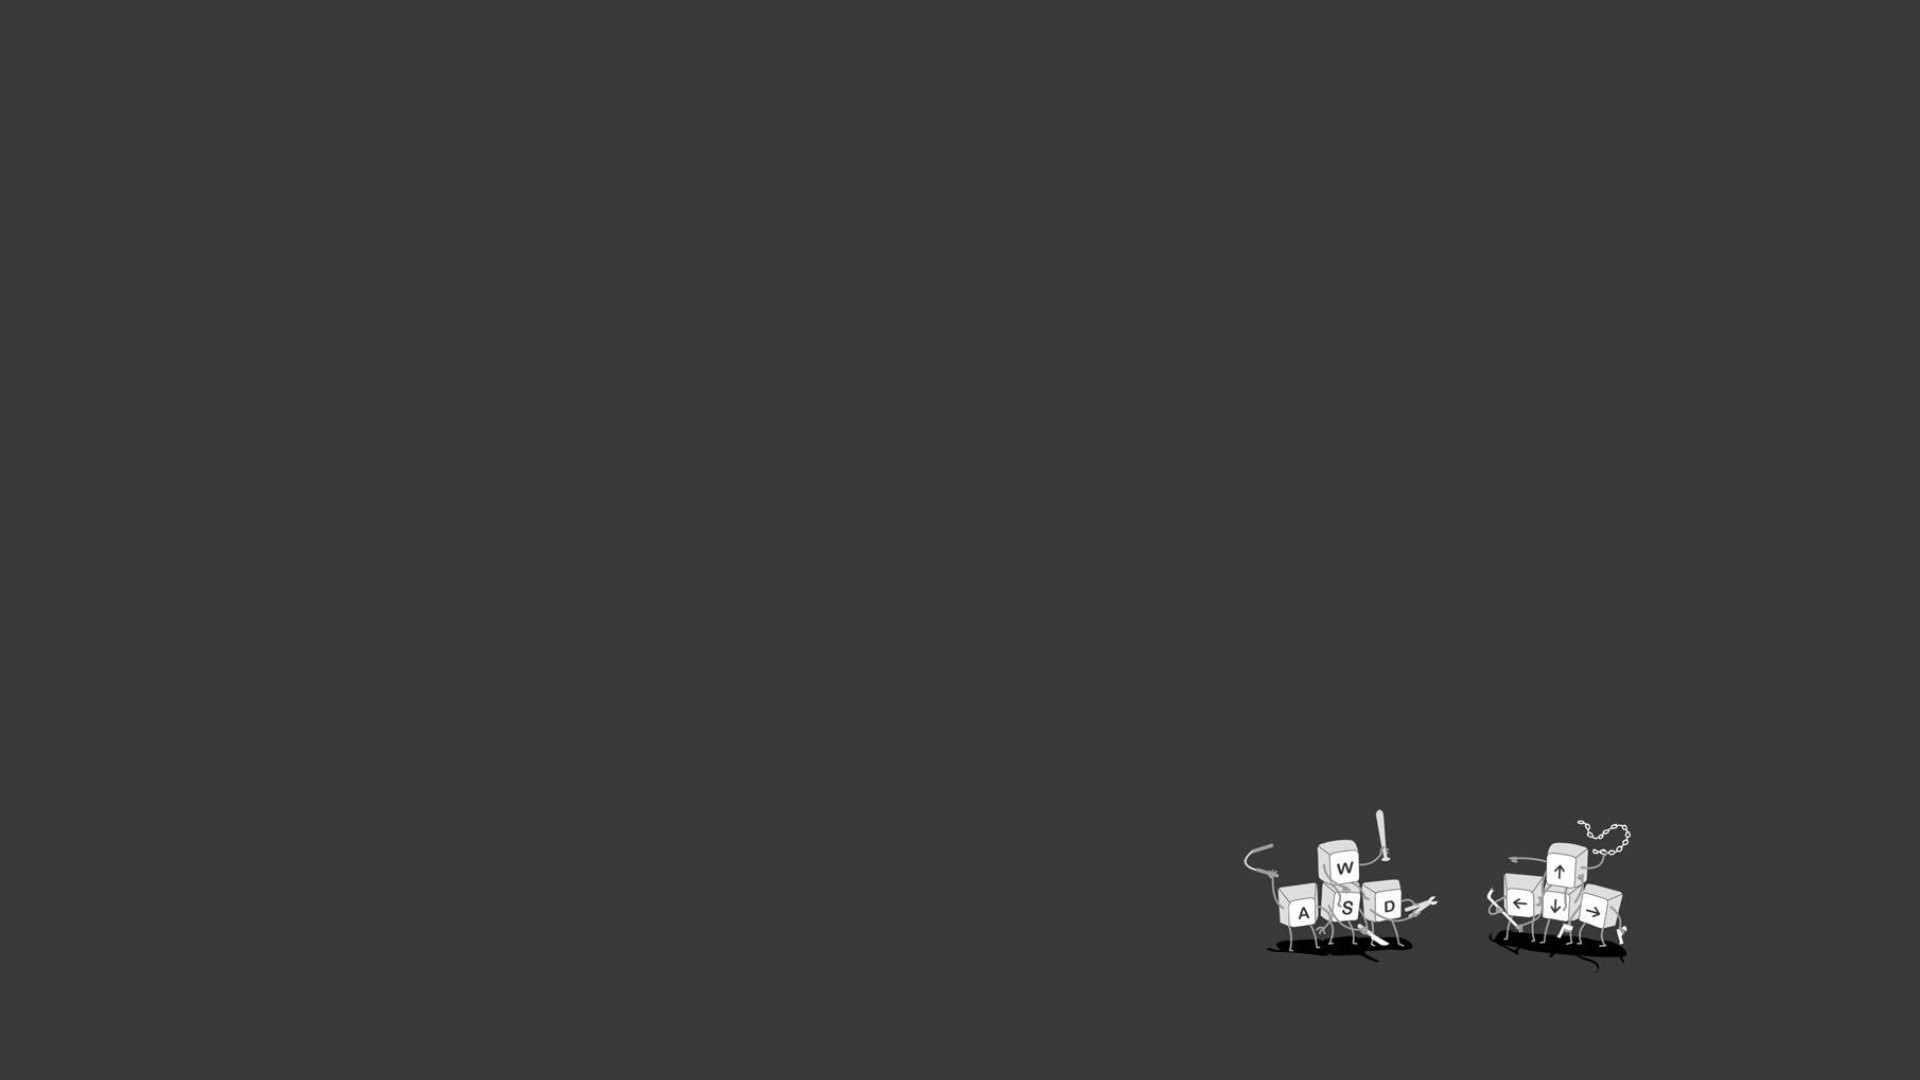 1920x1080 minimalistic, computers, hd images, mobile, simple,drawing hq, blue, funny,  simplistic Wallpaper HD